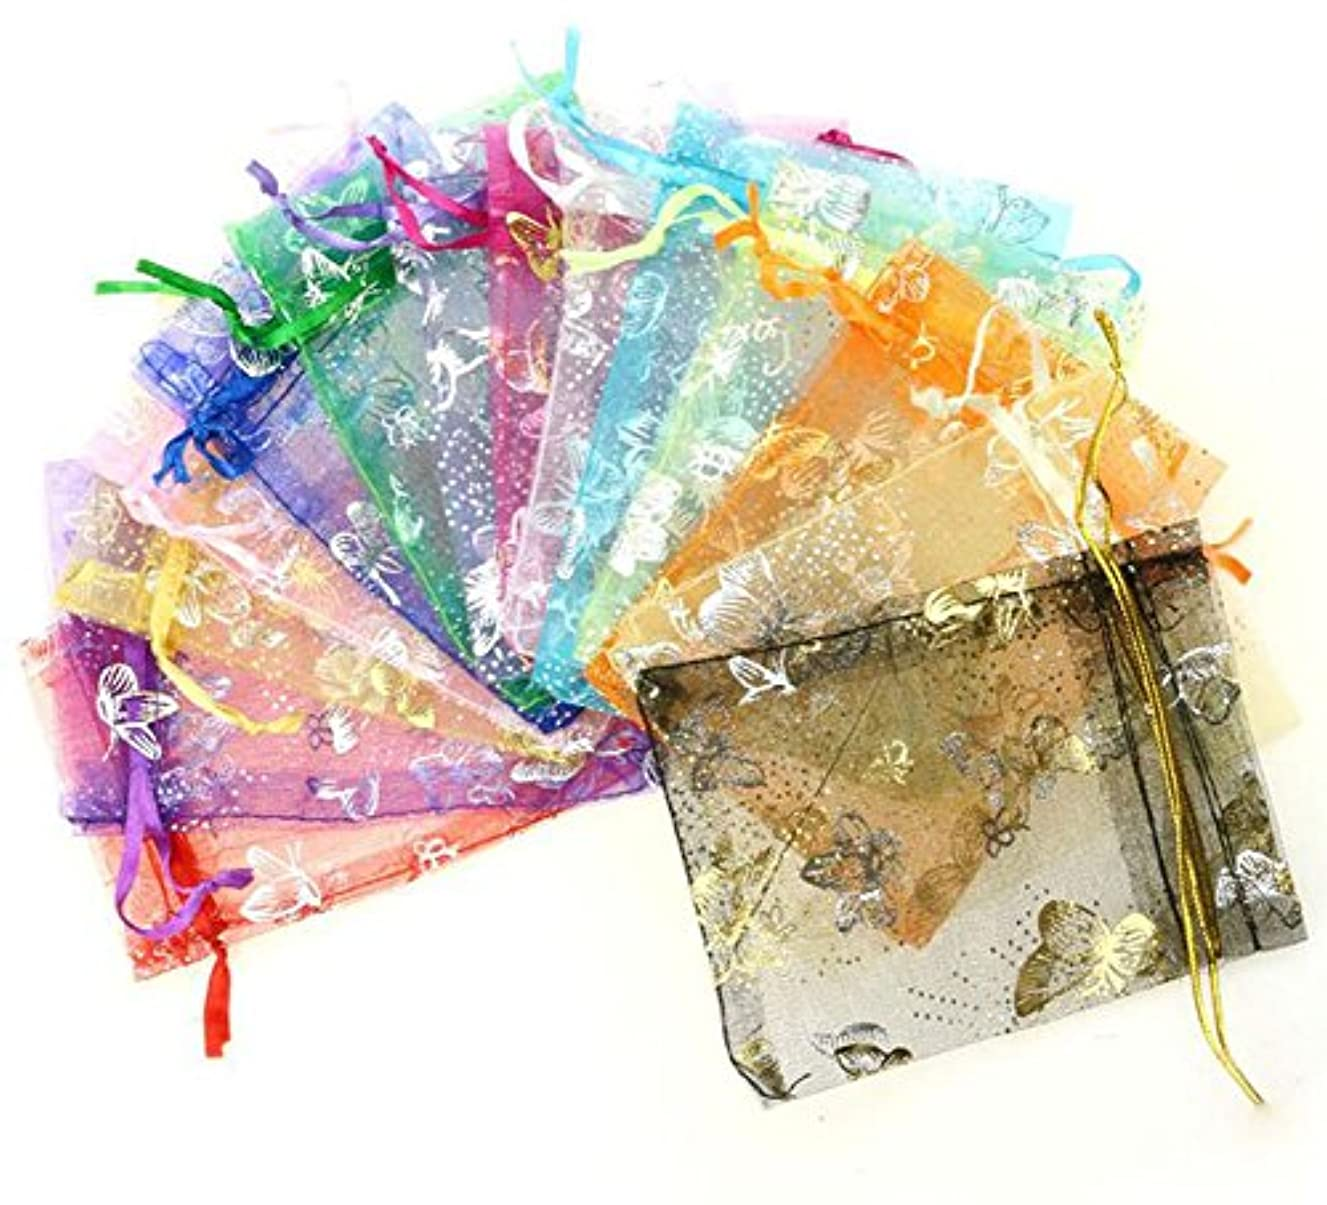 luzen 50 Pieces Butterfly Print Organza Bags Candy Bags Jewelry Bags Drawstring Pouches Wedding Favors Gift Bags(13x18 CM)